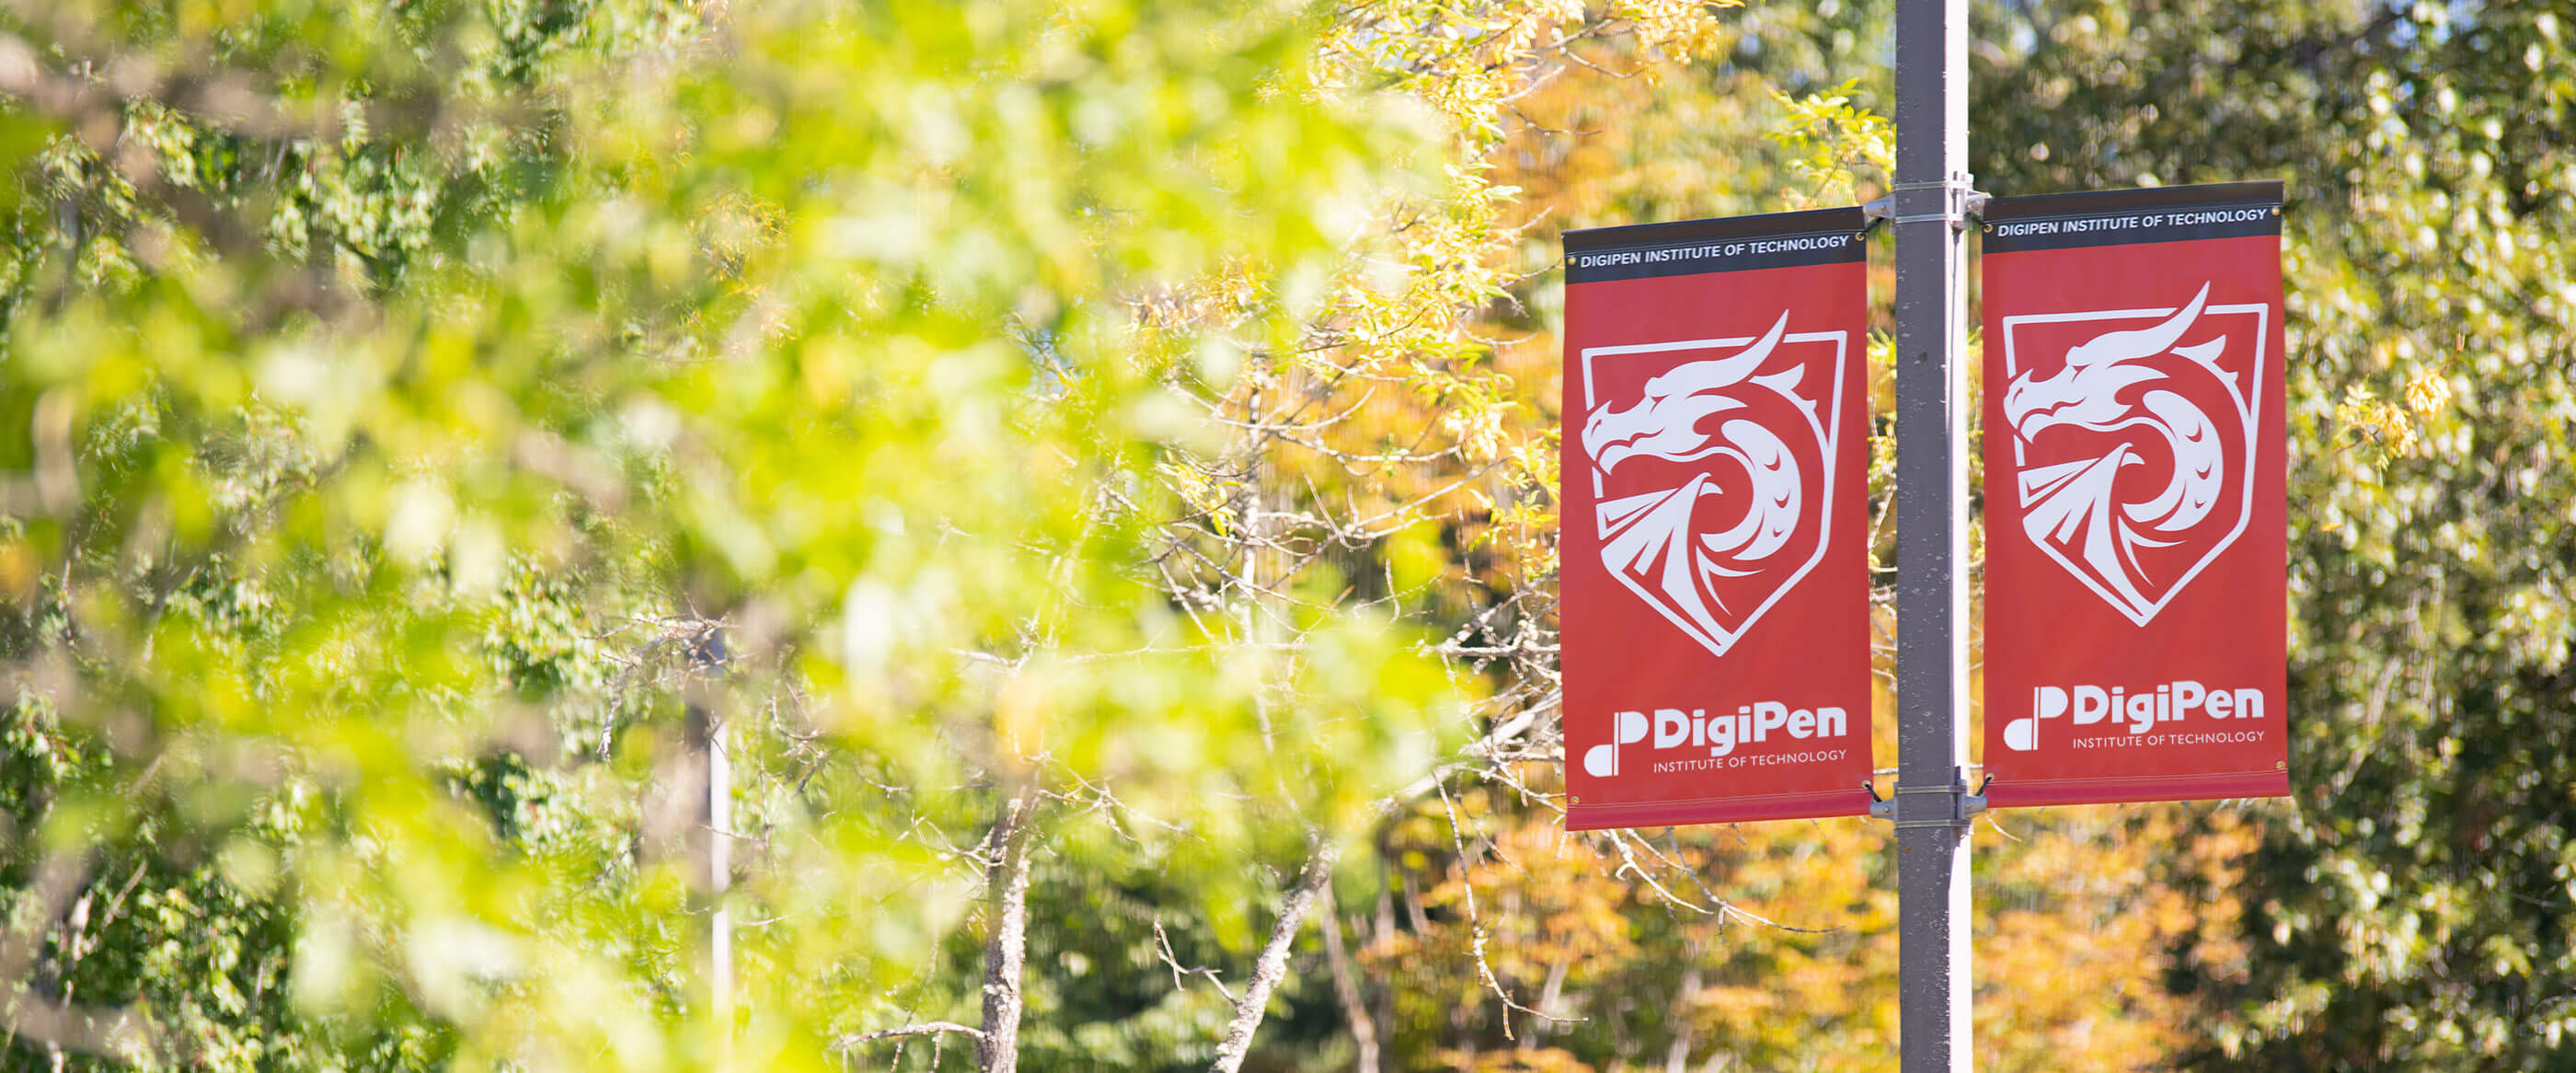 Banner depicting the DigiPen Dragon hanging from a pole.